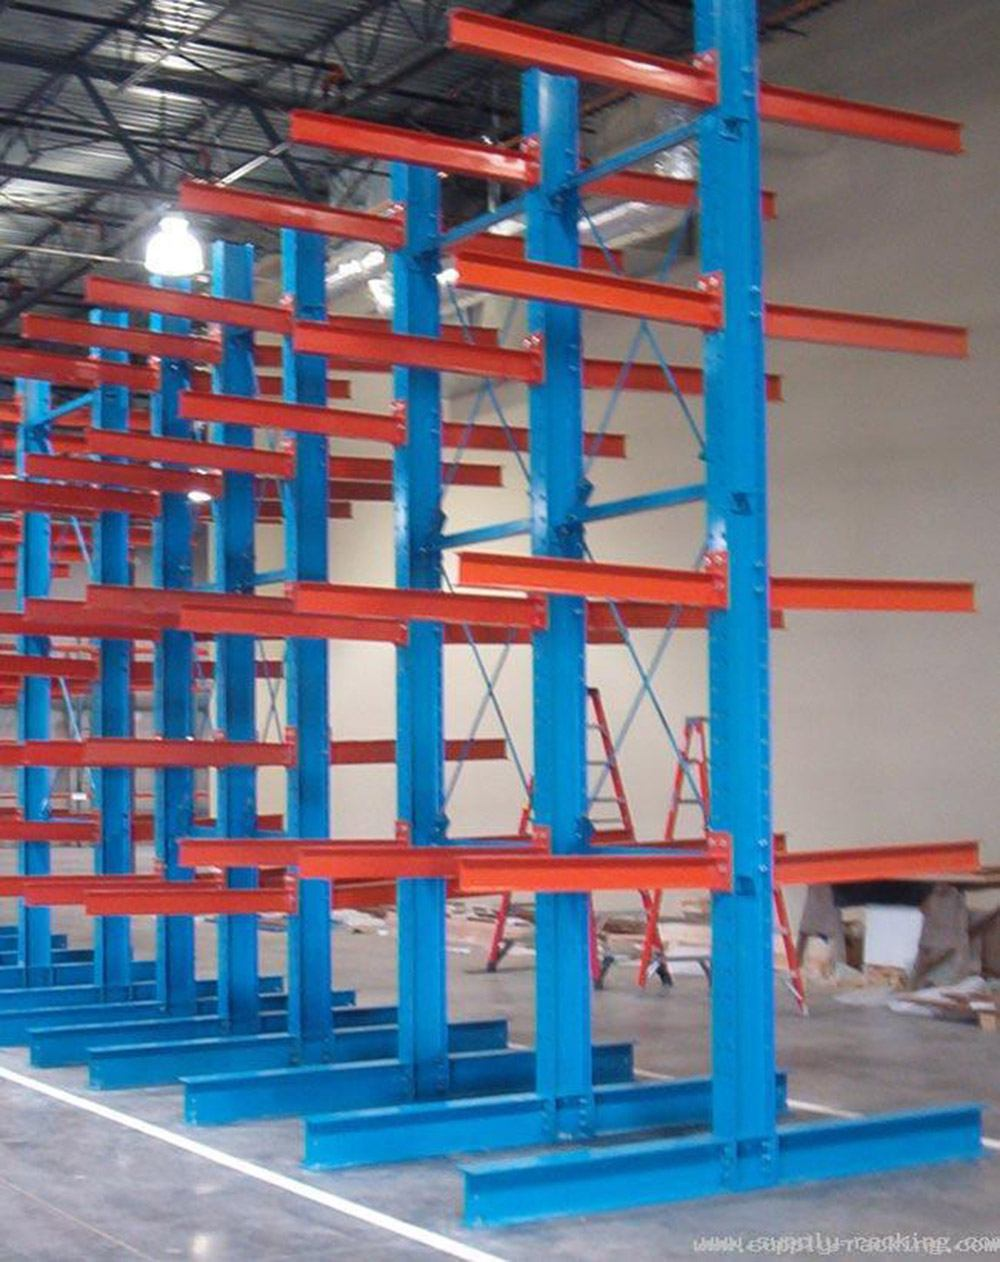 cantilever-racking-1269592342-0